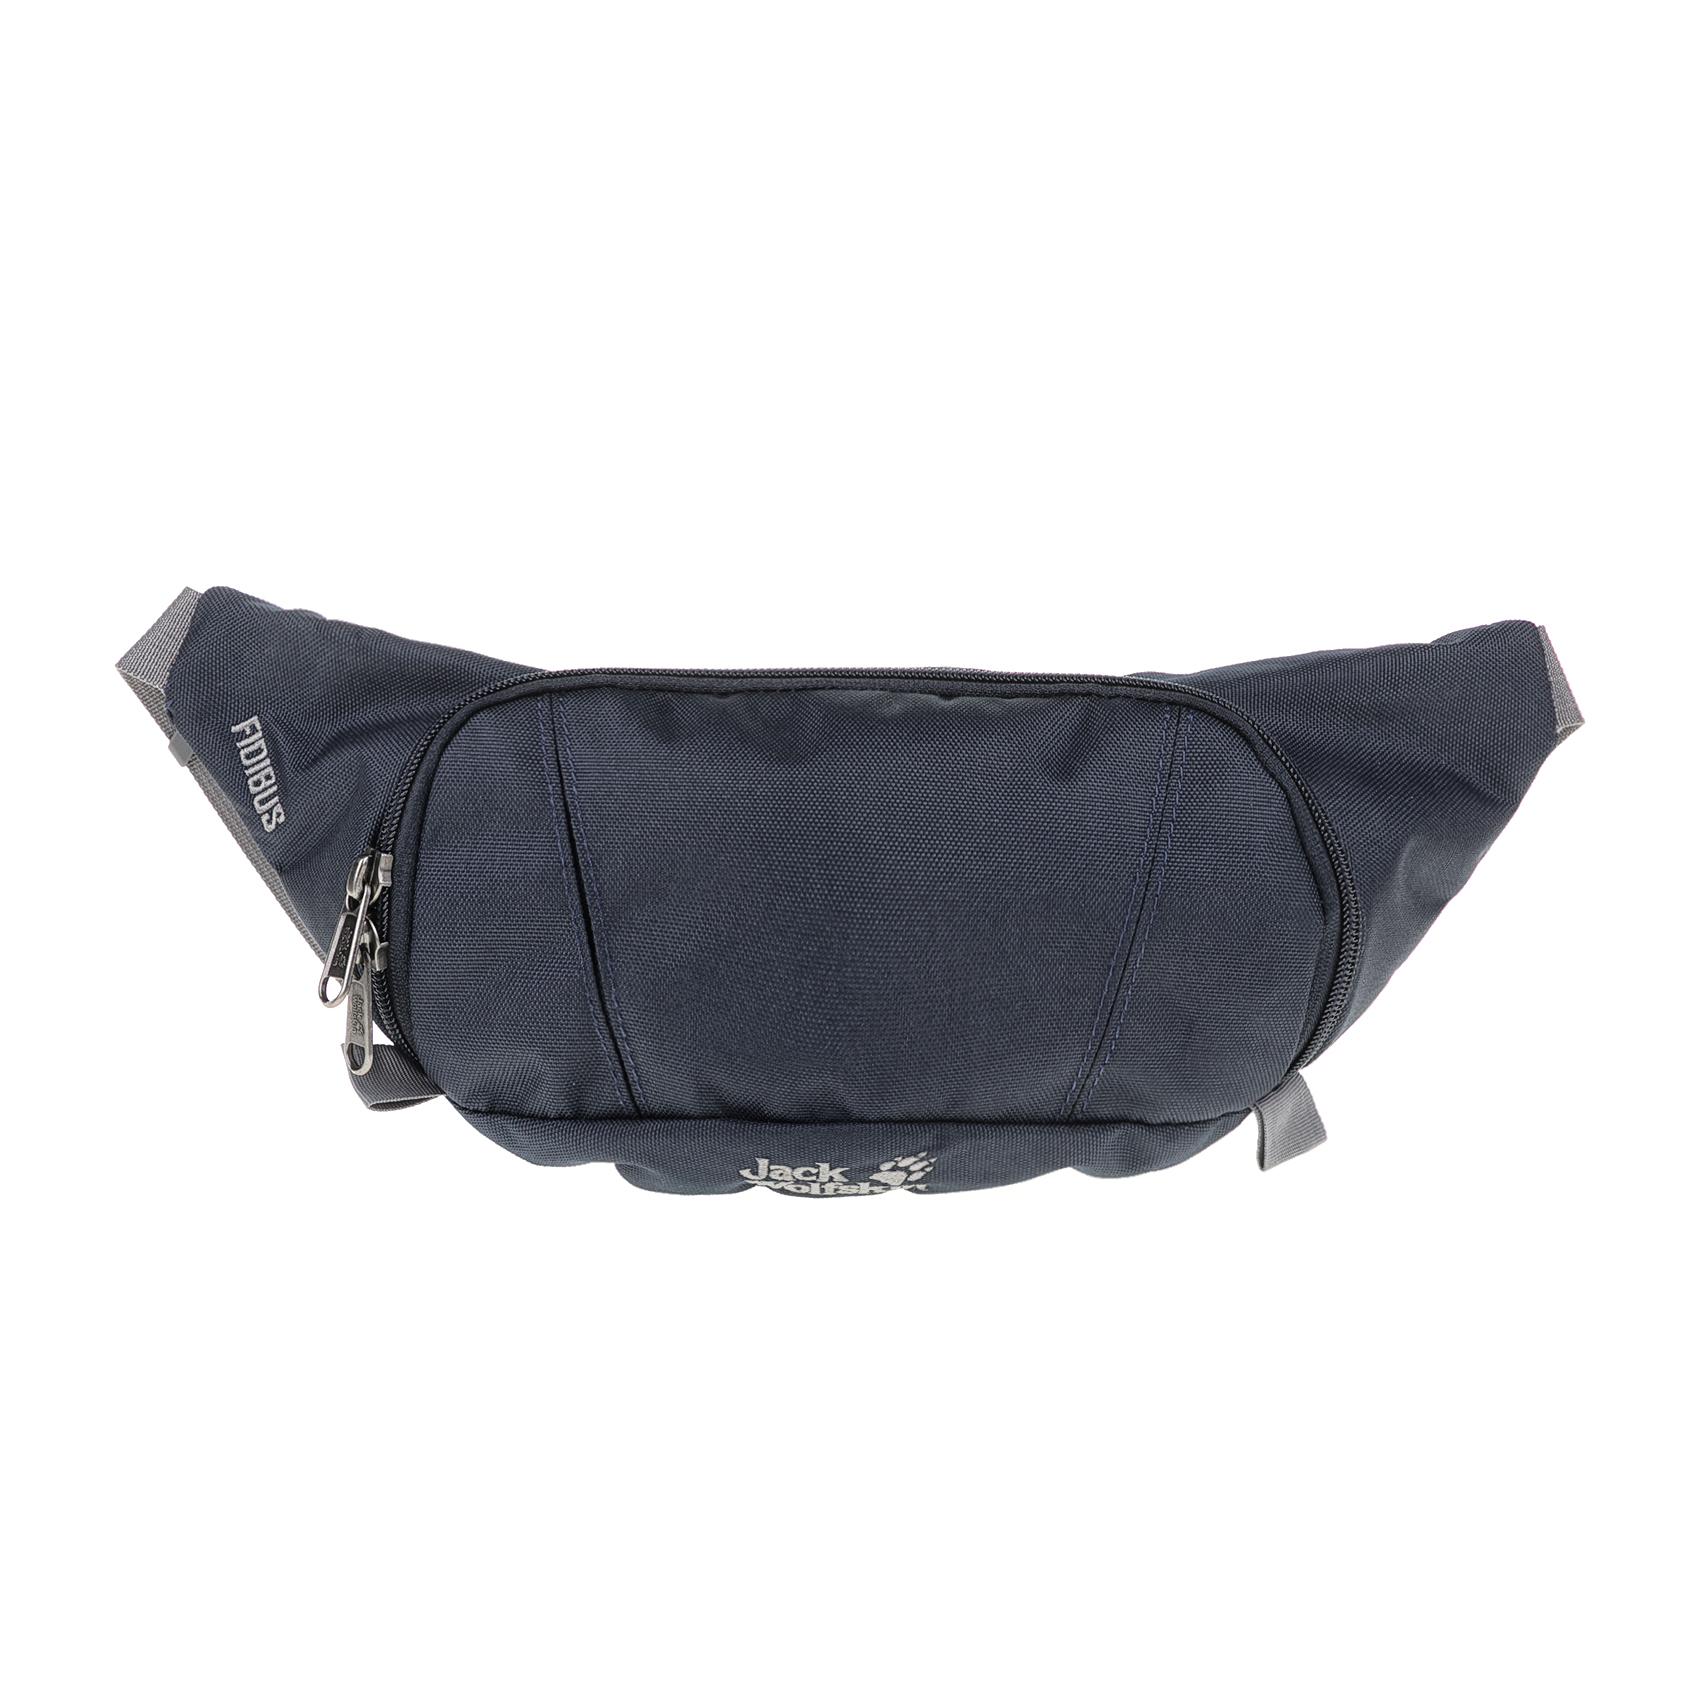 JACK WOLFSKIN – Τσαντάκι μέσης FIDIBUS FANNY PACK EQUIPMENT JACK WOLFSKIN μπλε